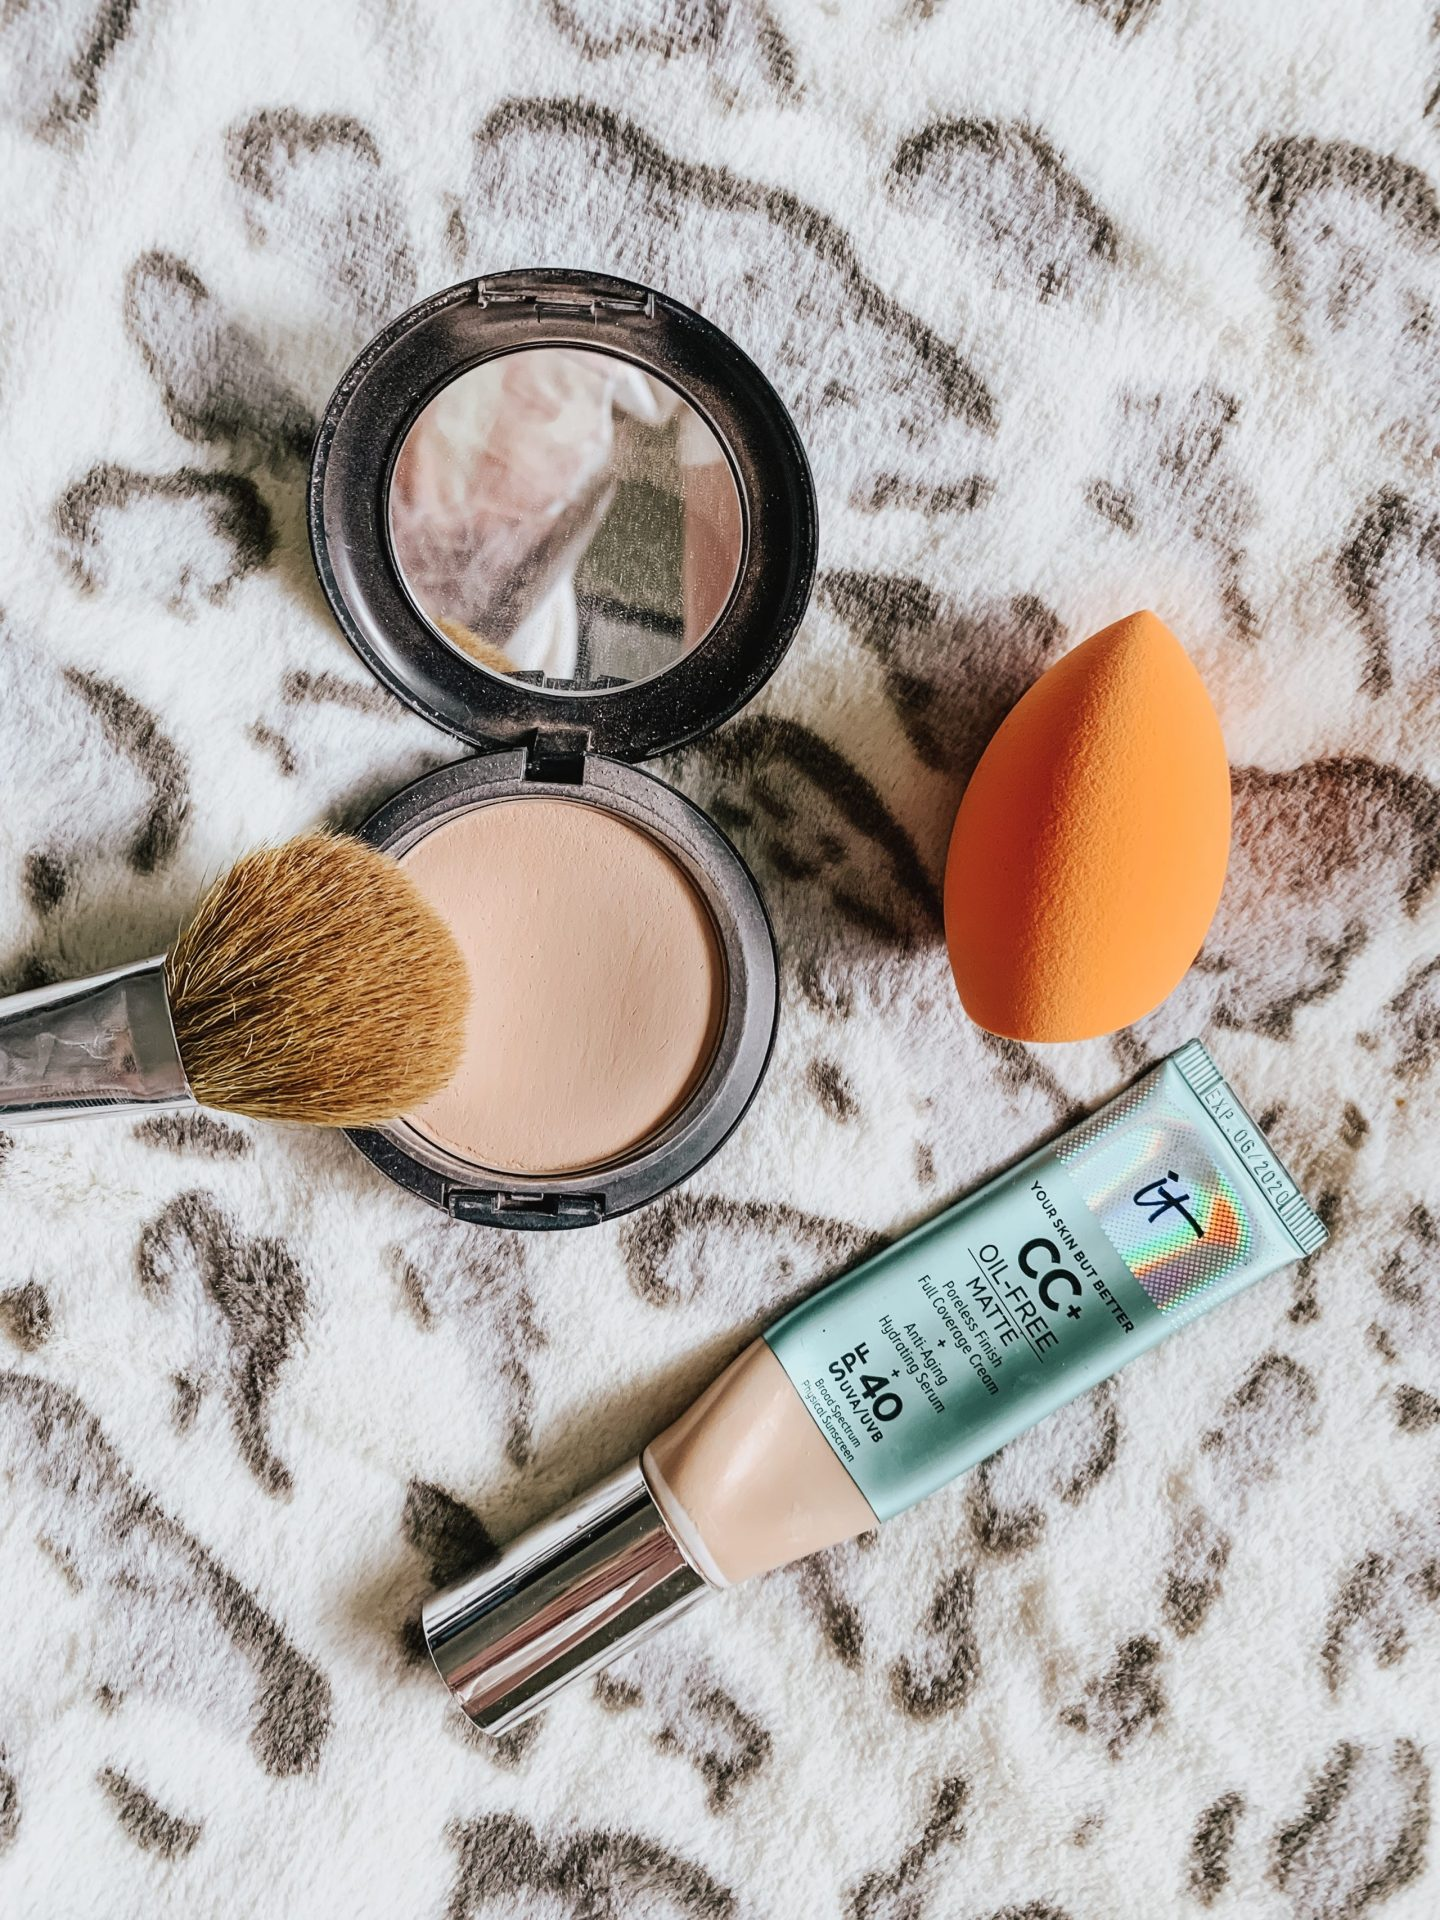 quick beauty routine, save or splurge, best beauty products, quick makeup routine